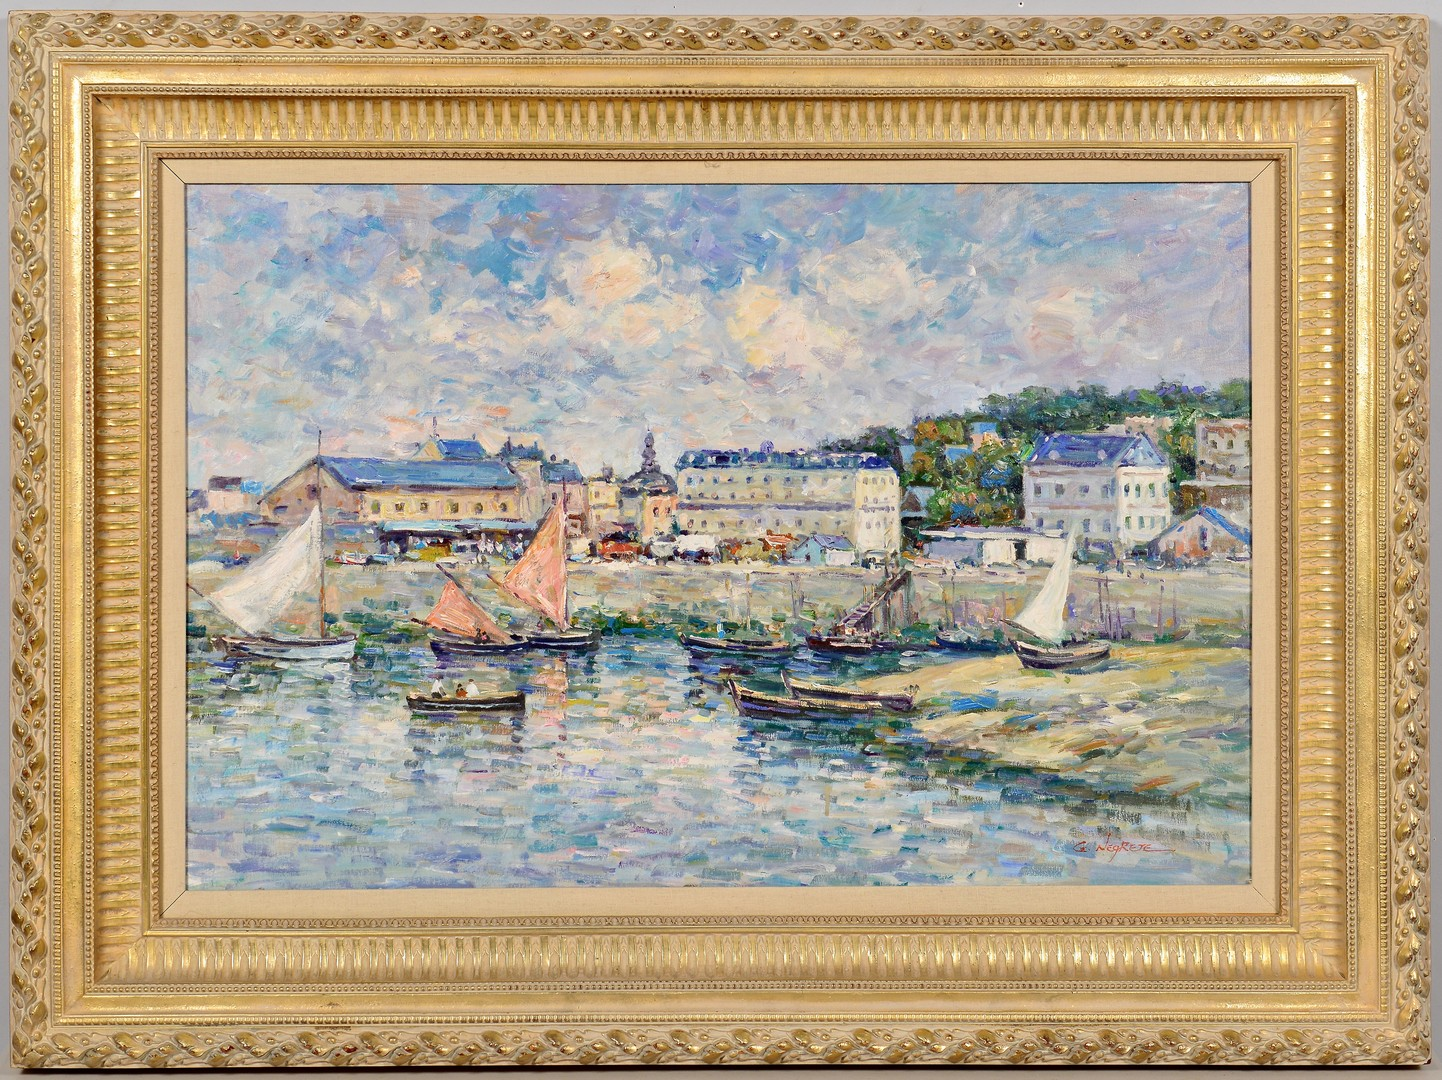 Lot 825: Impressionist Oil on Canvas, Negrete